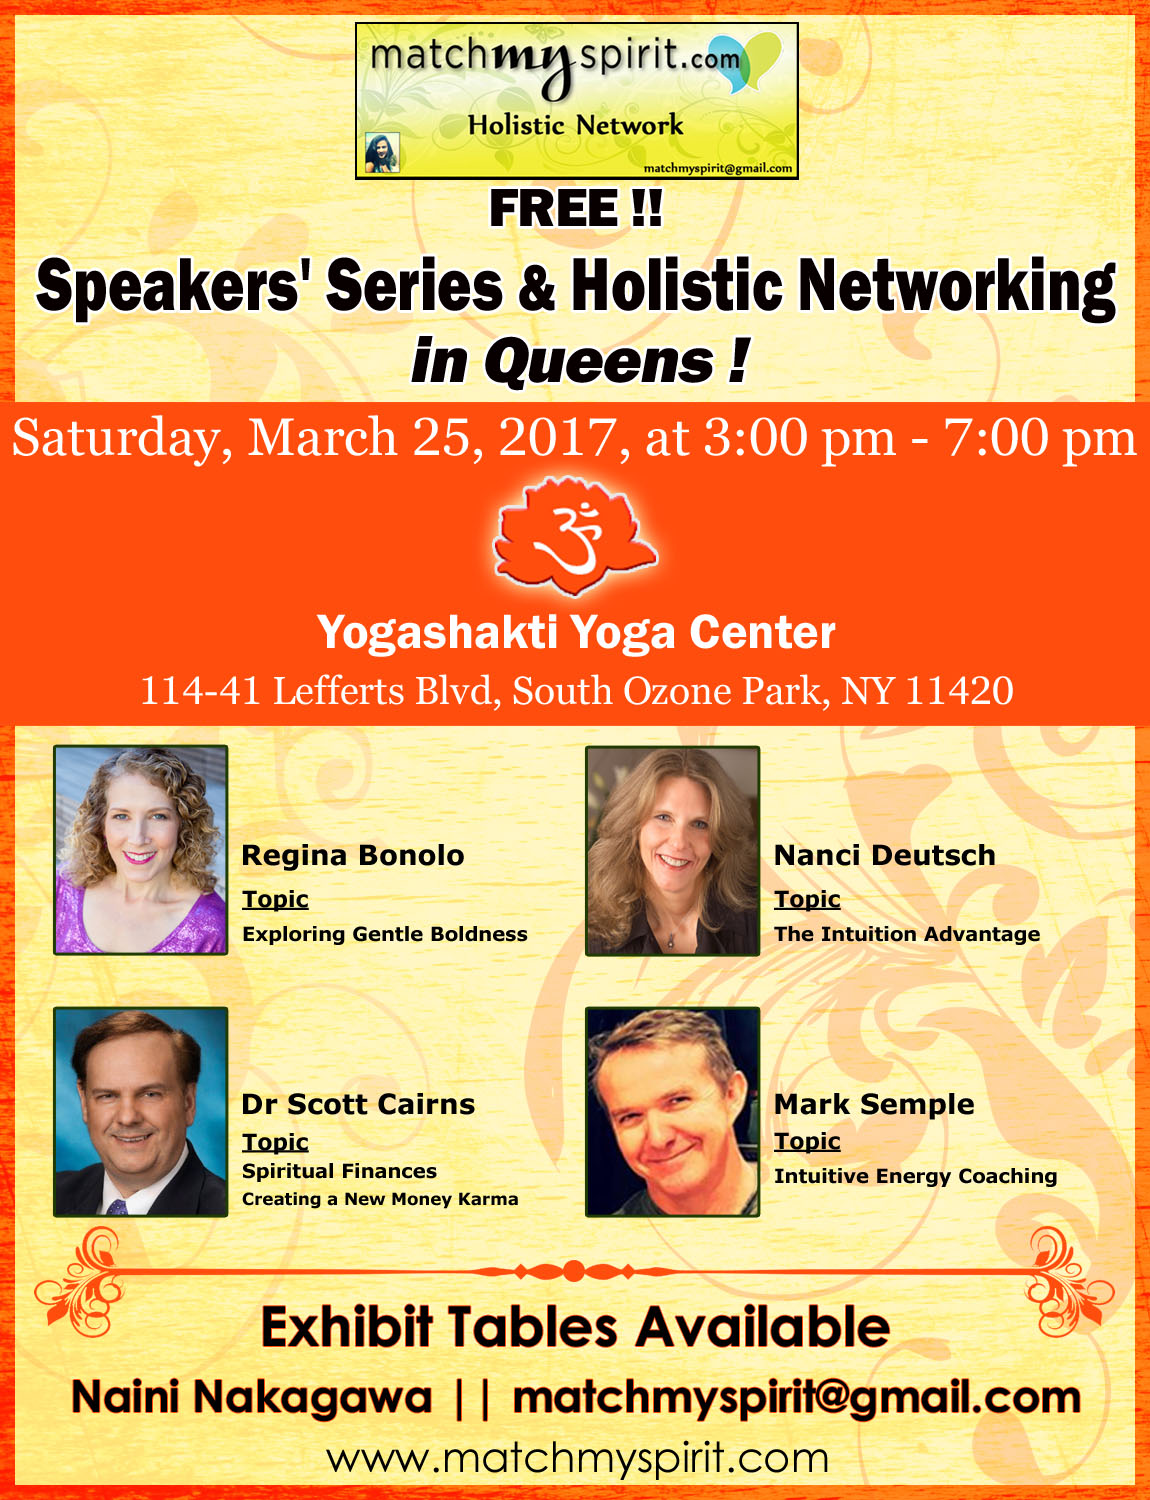 FREE!! Holistic Bazaar & Networking in Queens